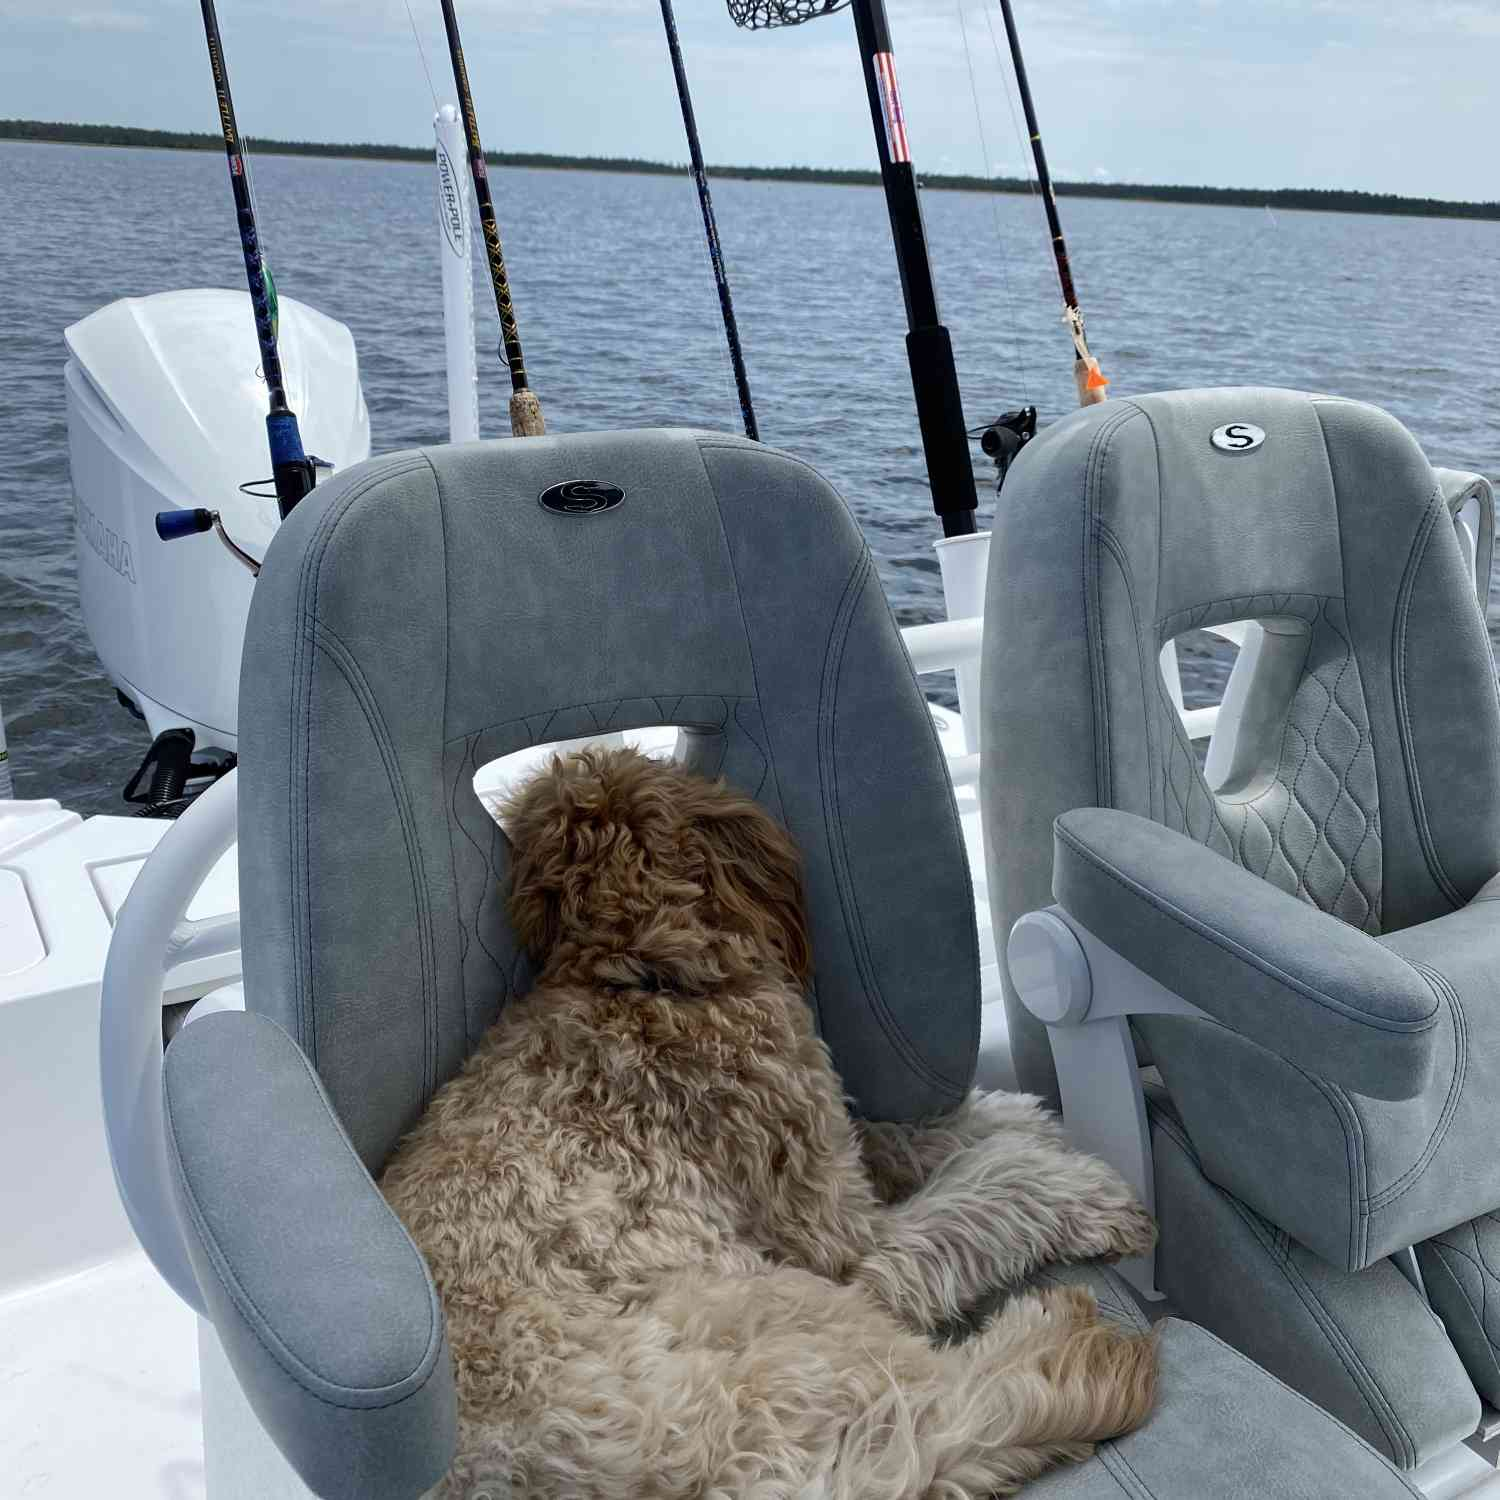 Title: Dog life - On board their Sportsman Masters 267OE Bay Boat - Location: Steinhatchee, FL. Participating in the Photo Contest #SportsmanJune2020